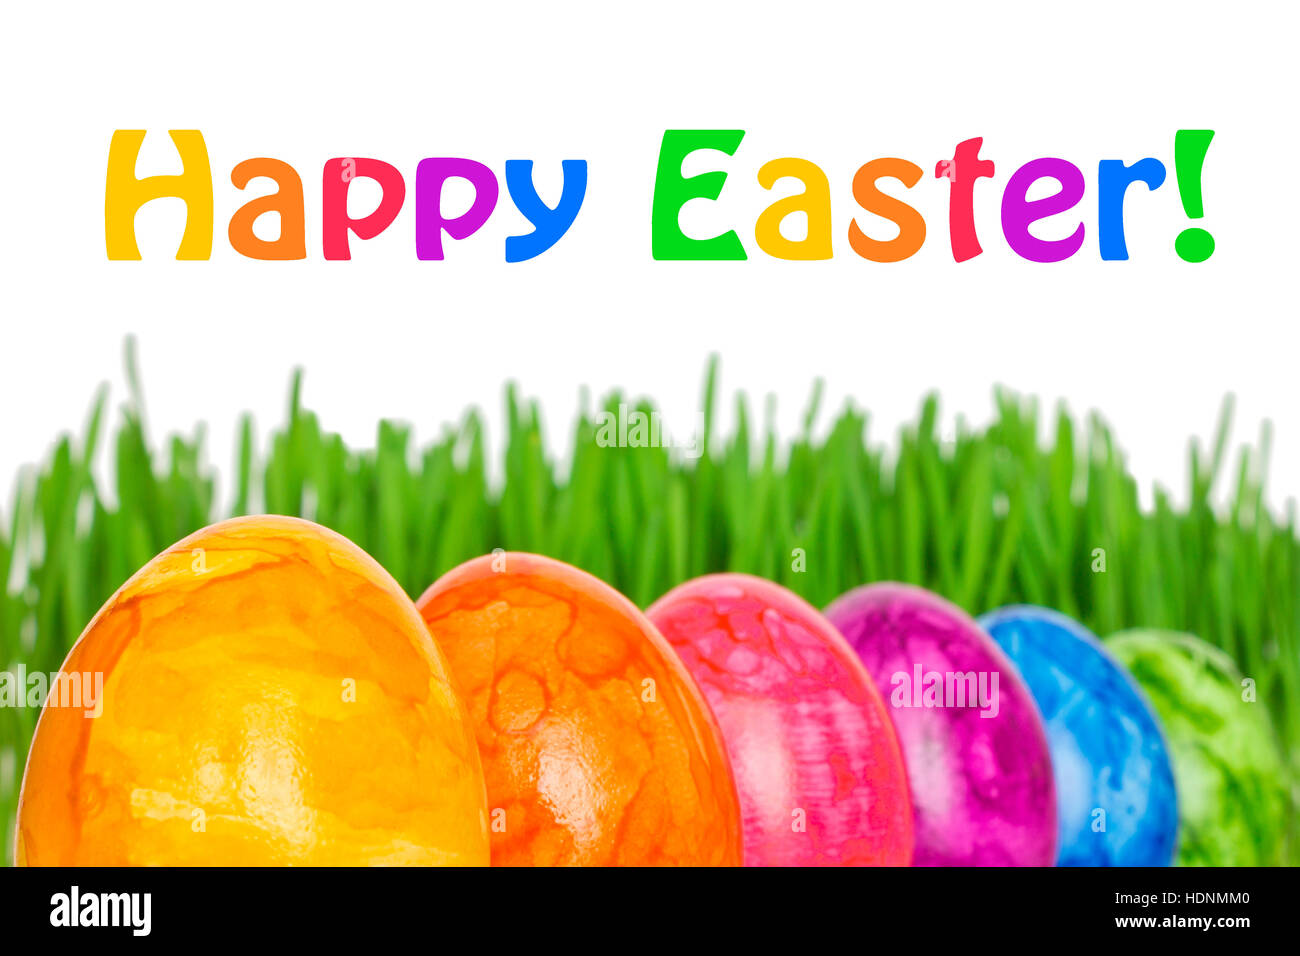 Row of 6 colorful Easter Eggs in front of green grass, text Happy Easter, in vivid rainbow colors - Stock Image